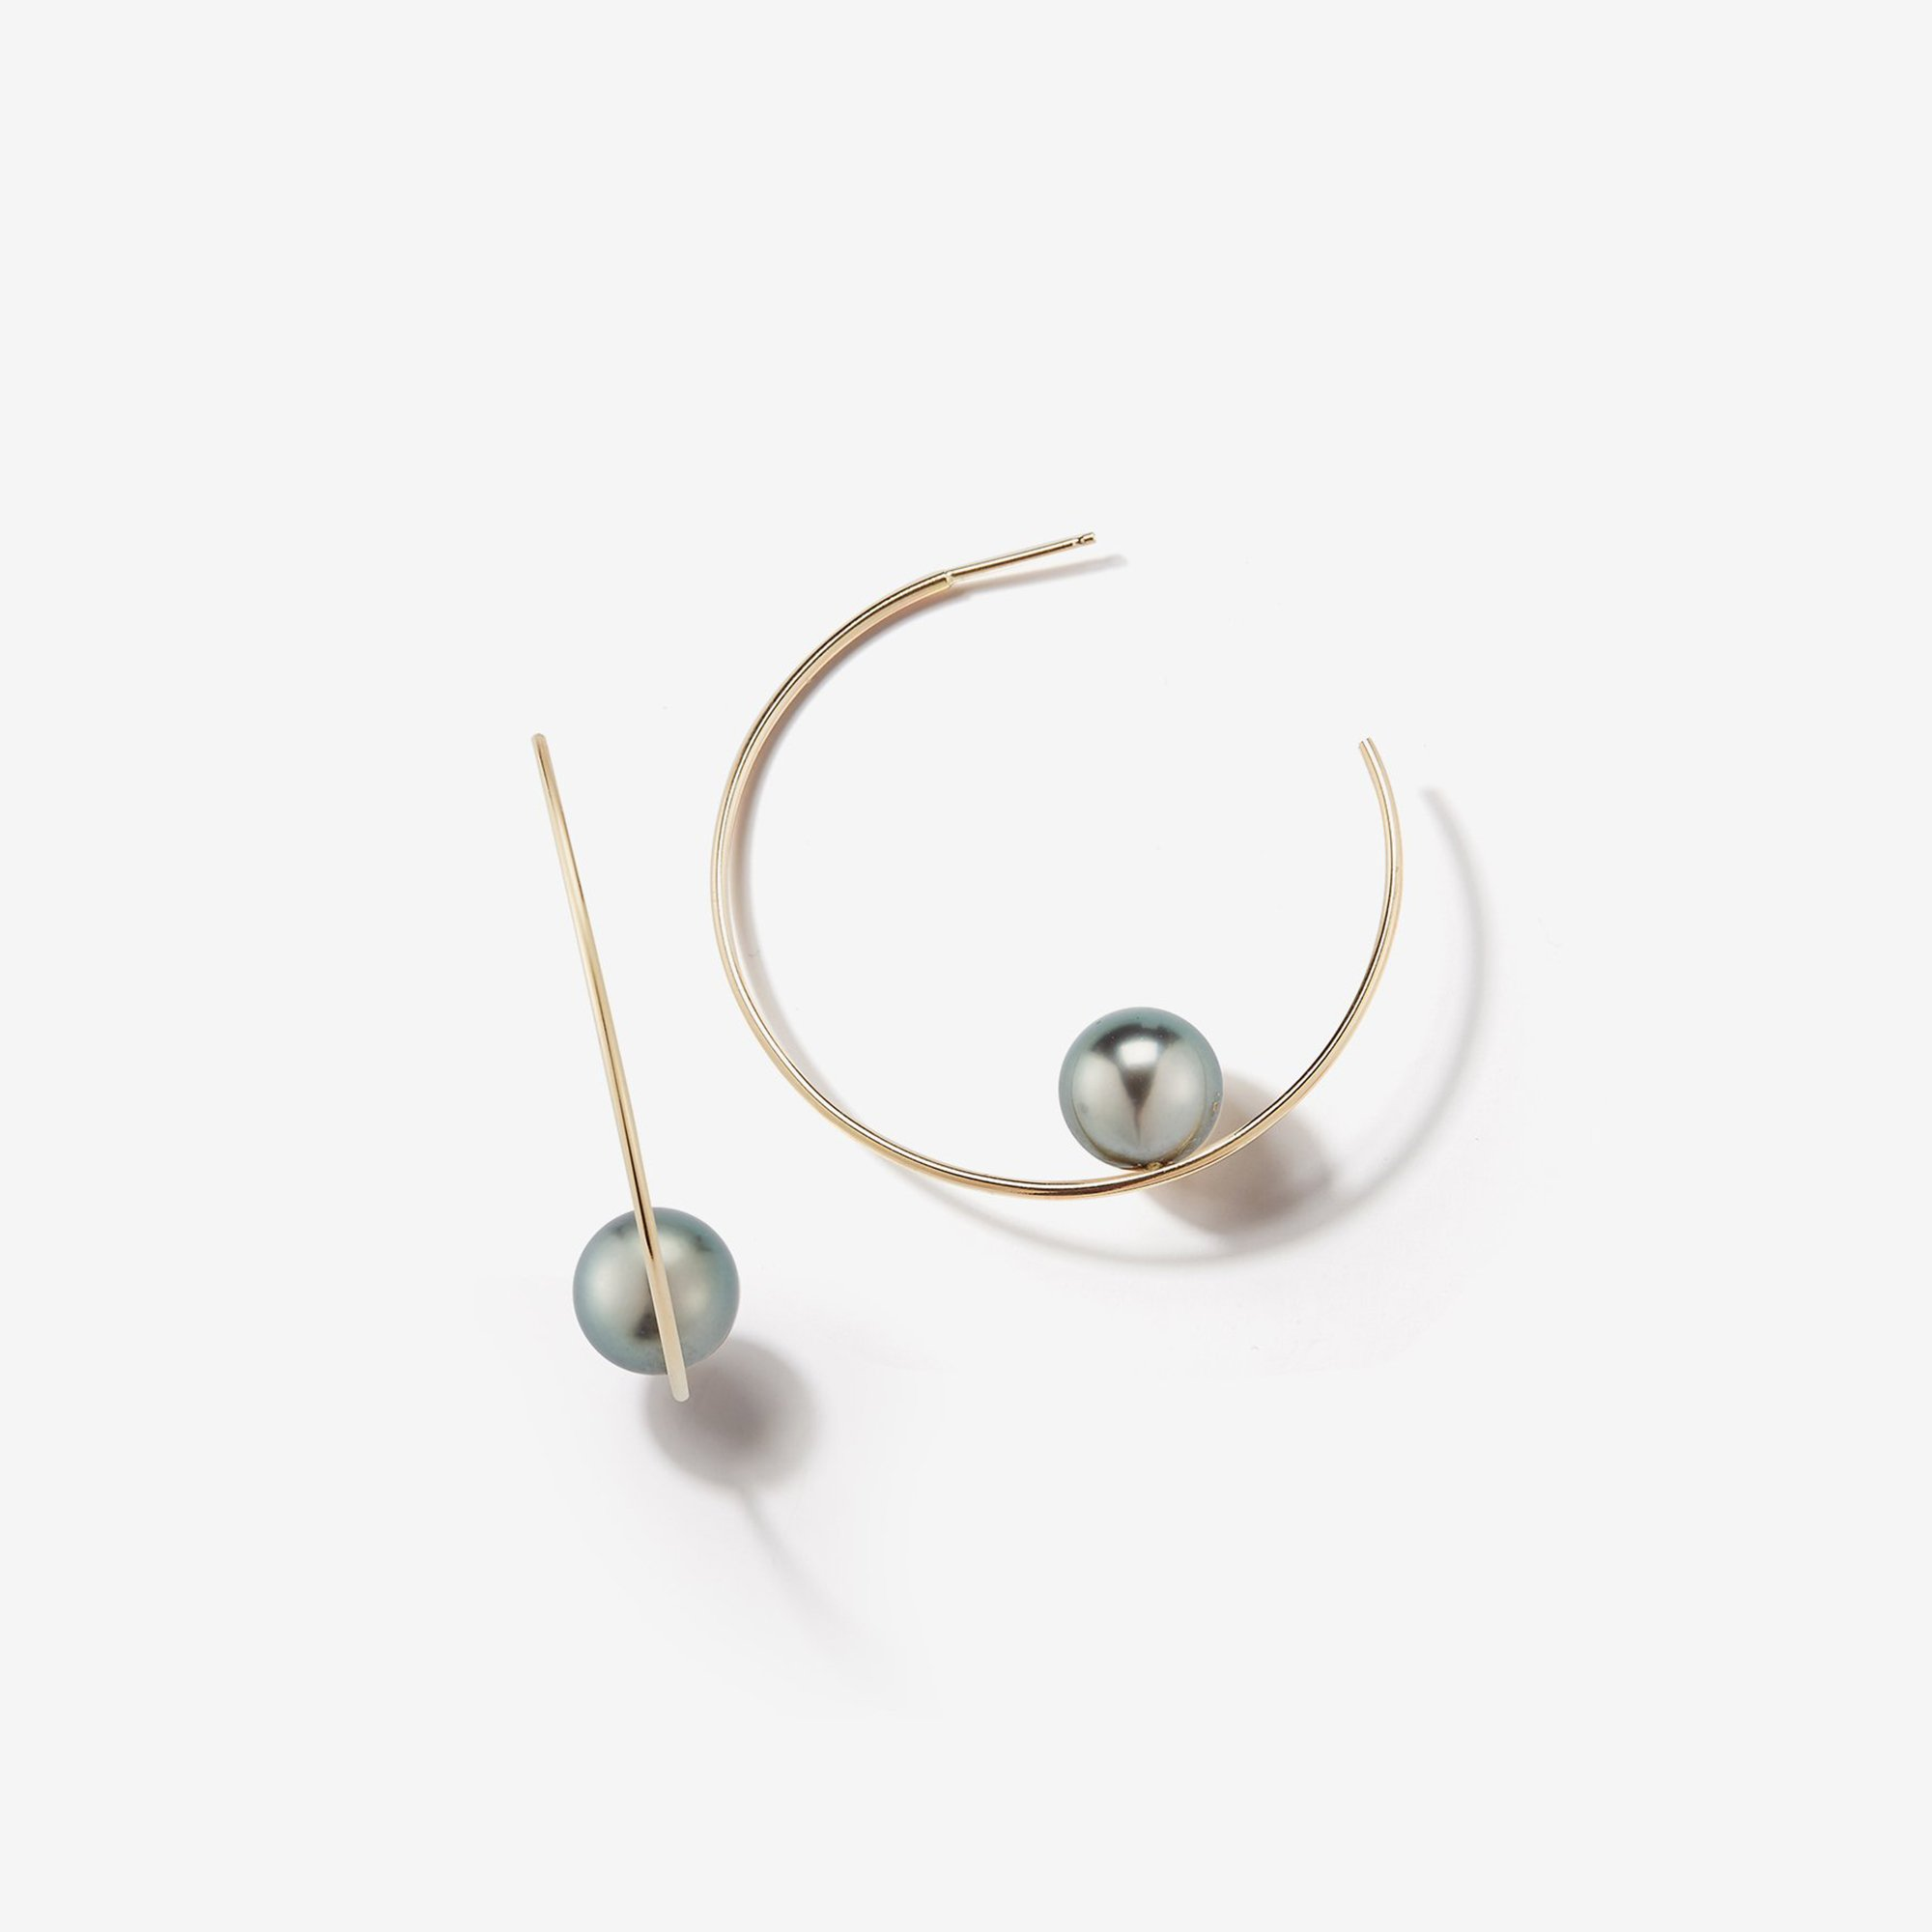 Small Floating Black Pearl Hoop Earrings